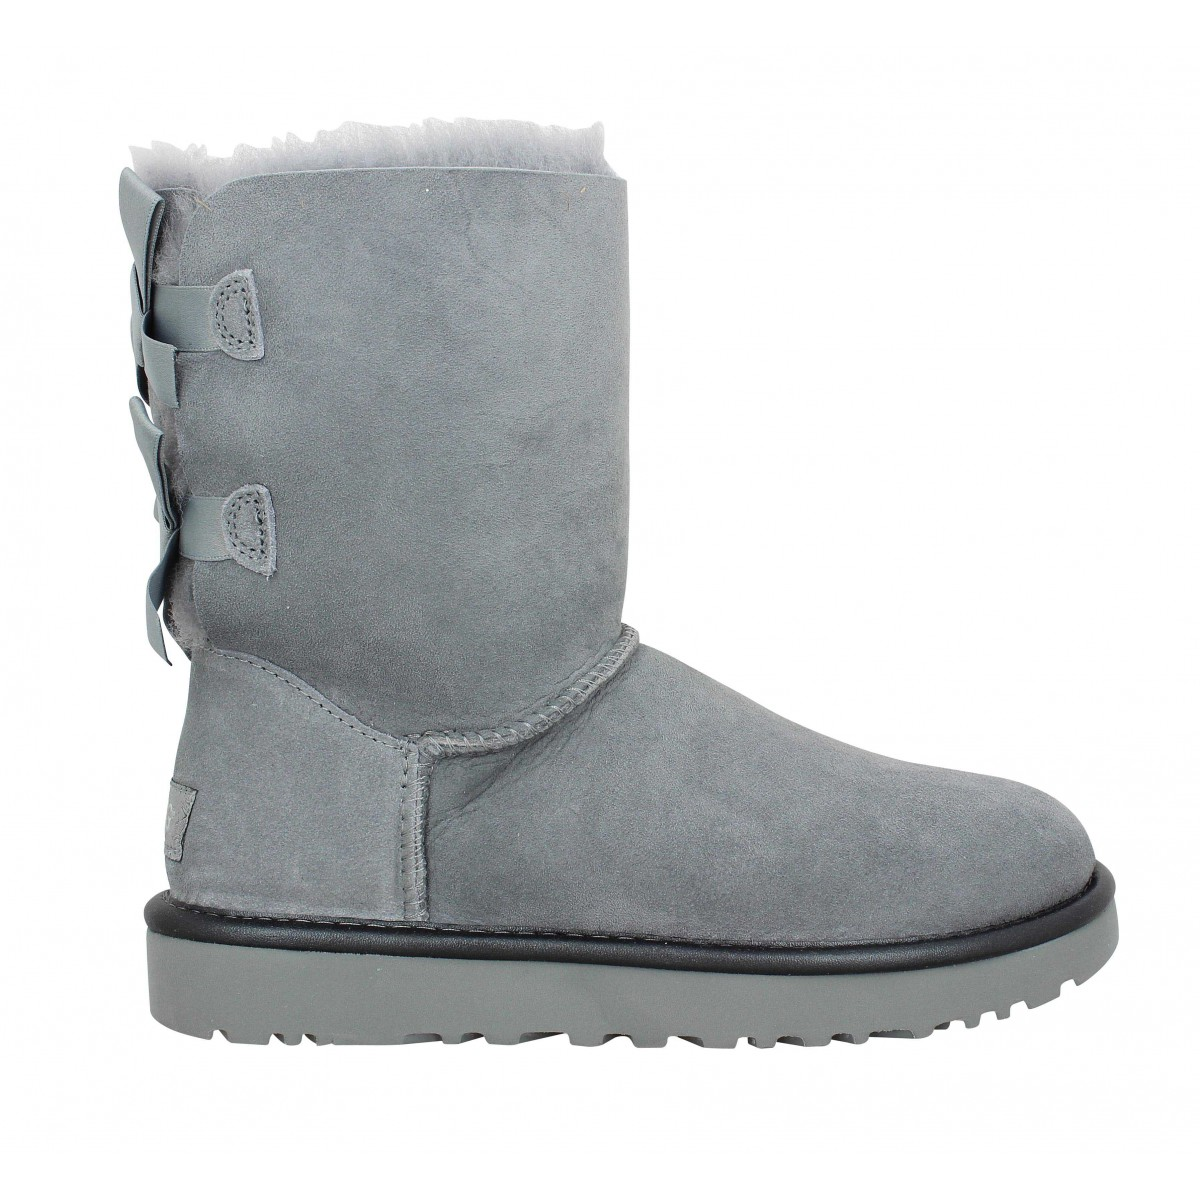 9db73d7ddd1 Real Ugg Bottes Outlet Store - cheap watches mgc-gas.com